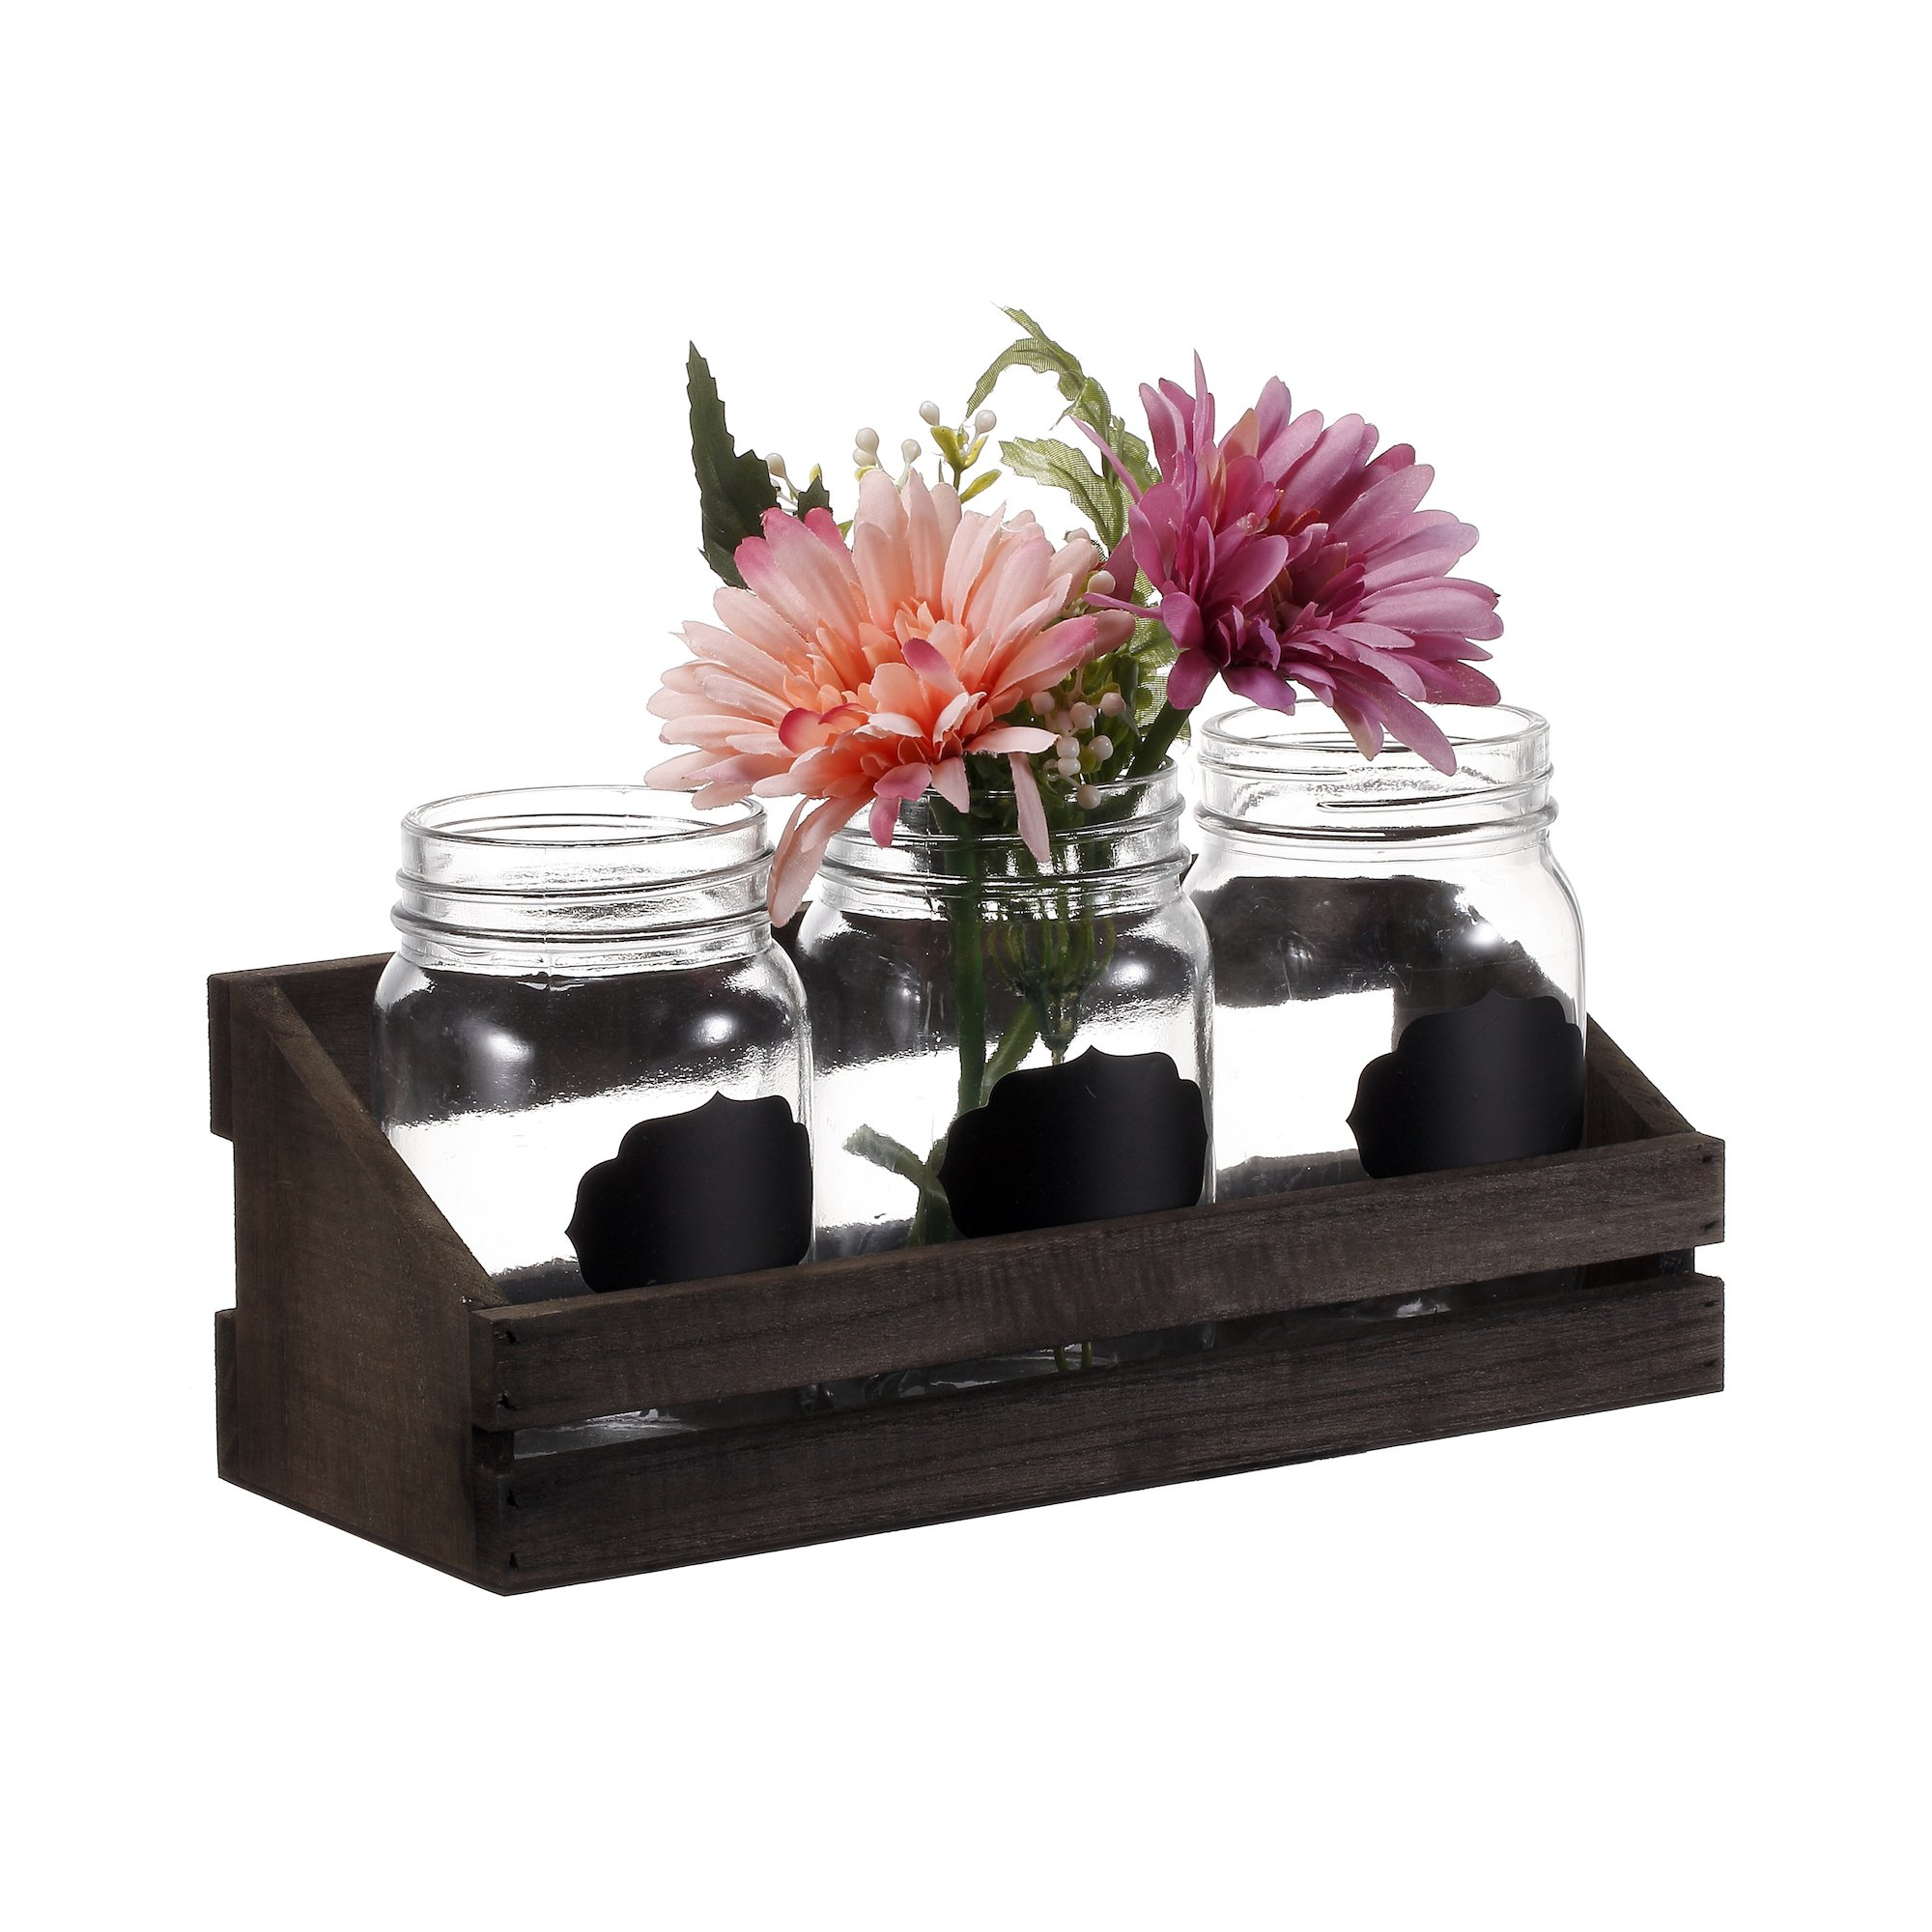 V-More Bud Vase with Chicken Wire Basket V-More Rustic Glass Mason Jar with Chalkboard Label and Wooden Tray 6.5-inch Tall For Home Decor Wedding Party Celebration by V-More Bud Vase with Chicken Wire Basket (Image #8)